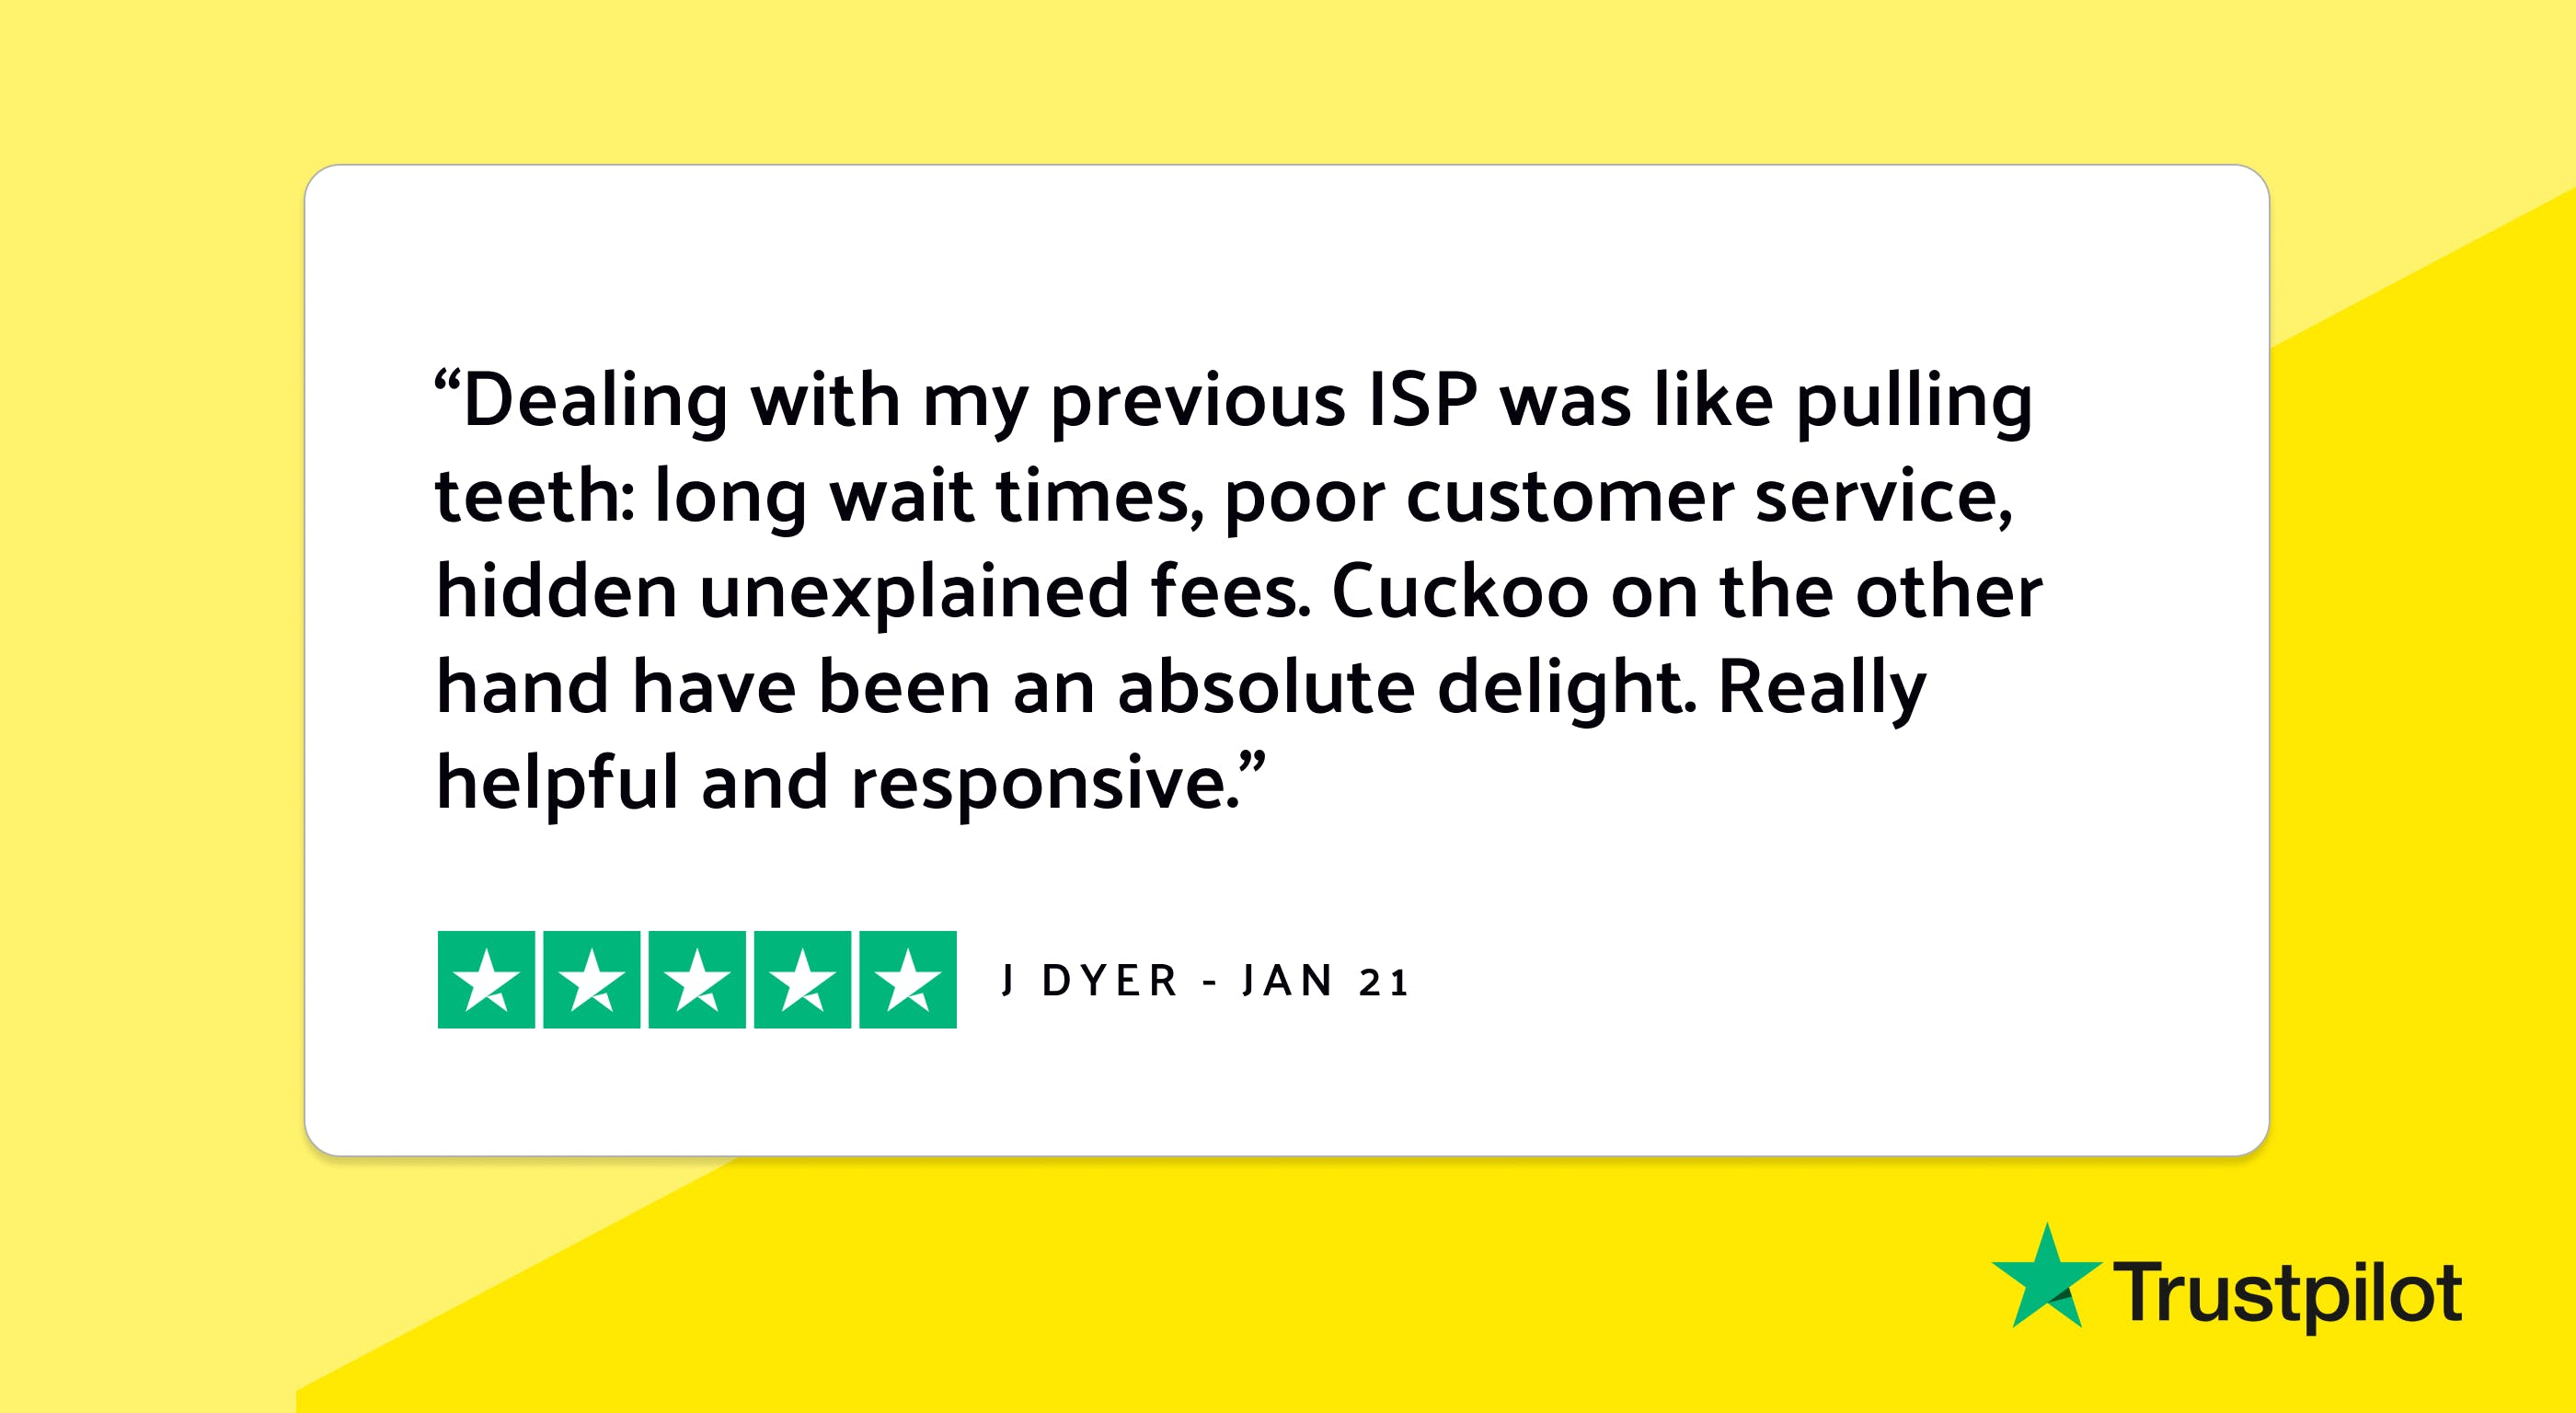 """Trustpilot review: """"Dealing with my previous ISP was like pulling teeth, long wait times, poor customer service, hidden unexplained fees. Cuckoo on the other hand have been an absolute delight. Really helpful and responsive."""""""